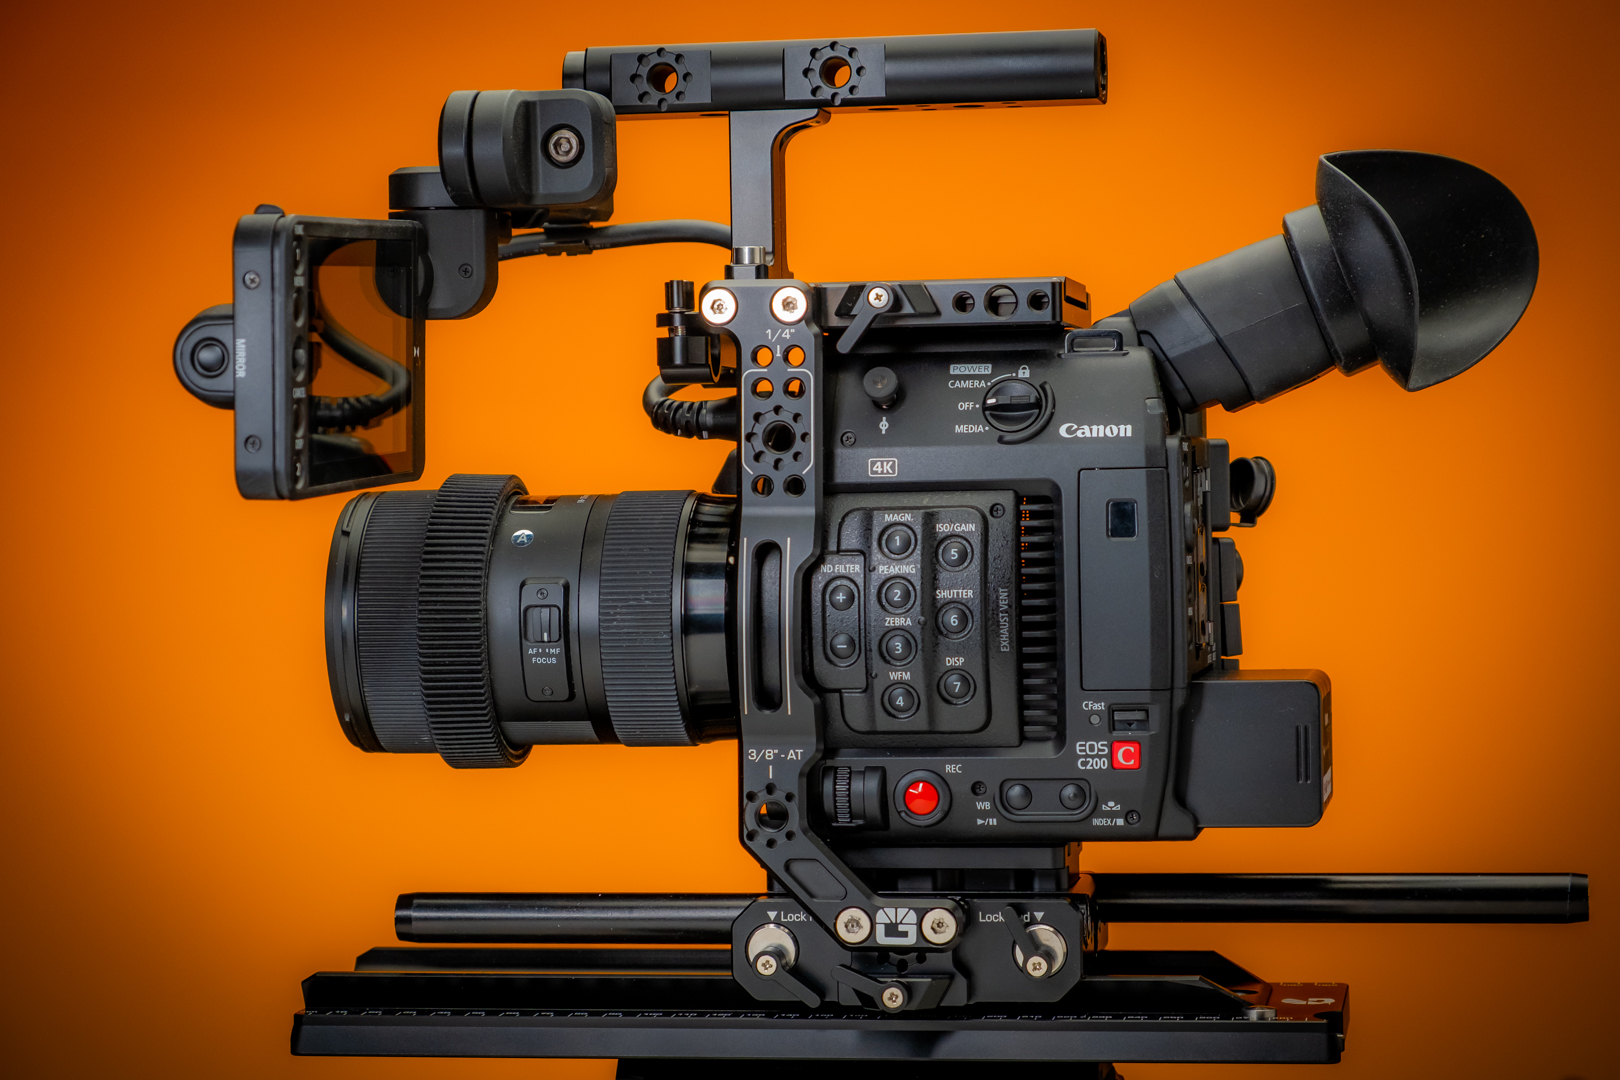 Hands-on with the Bright Tangerine Left Field Canon C200 Cage